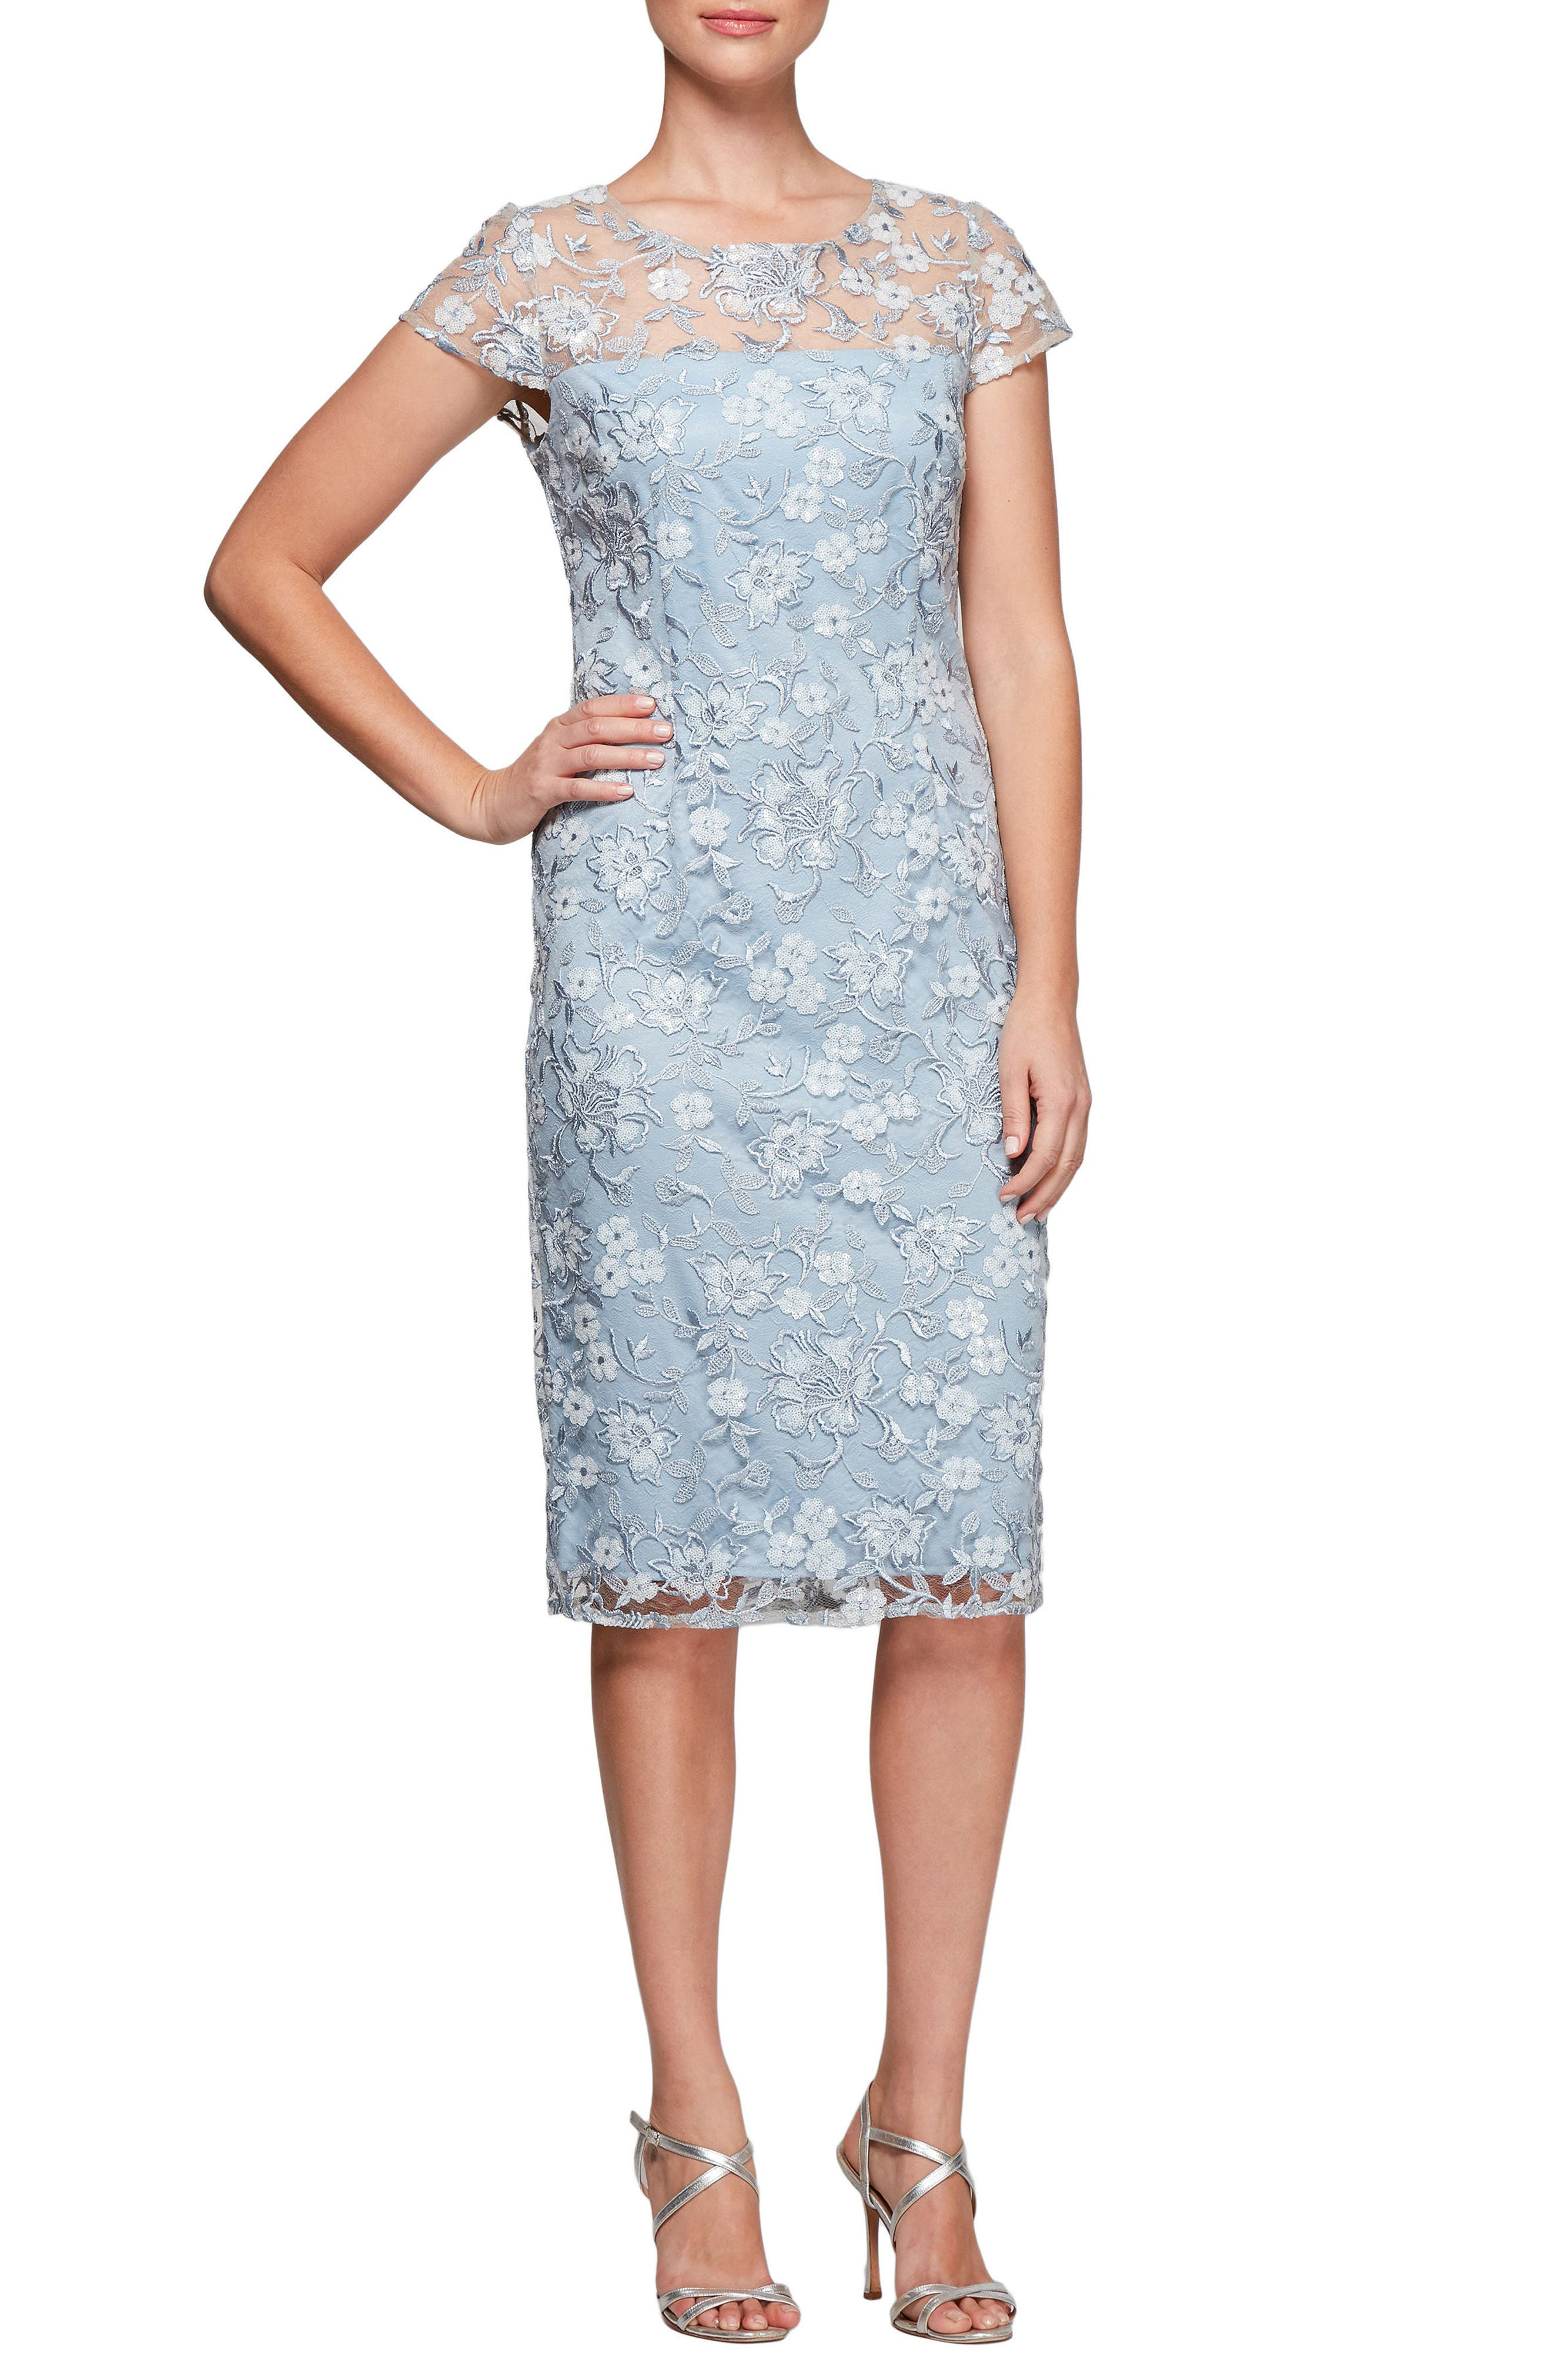 Floral Embroidered Shift Dress,                             Main thumbnail 1, color,                             LIGHT BLUE